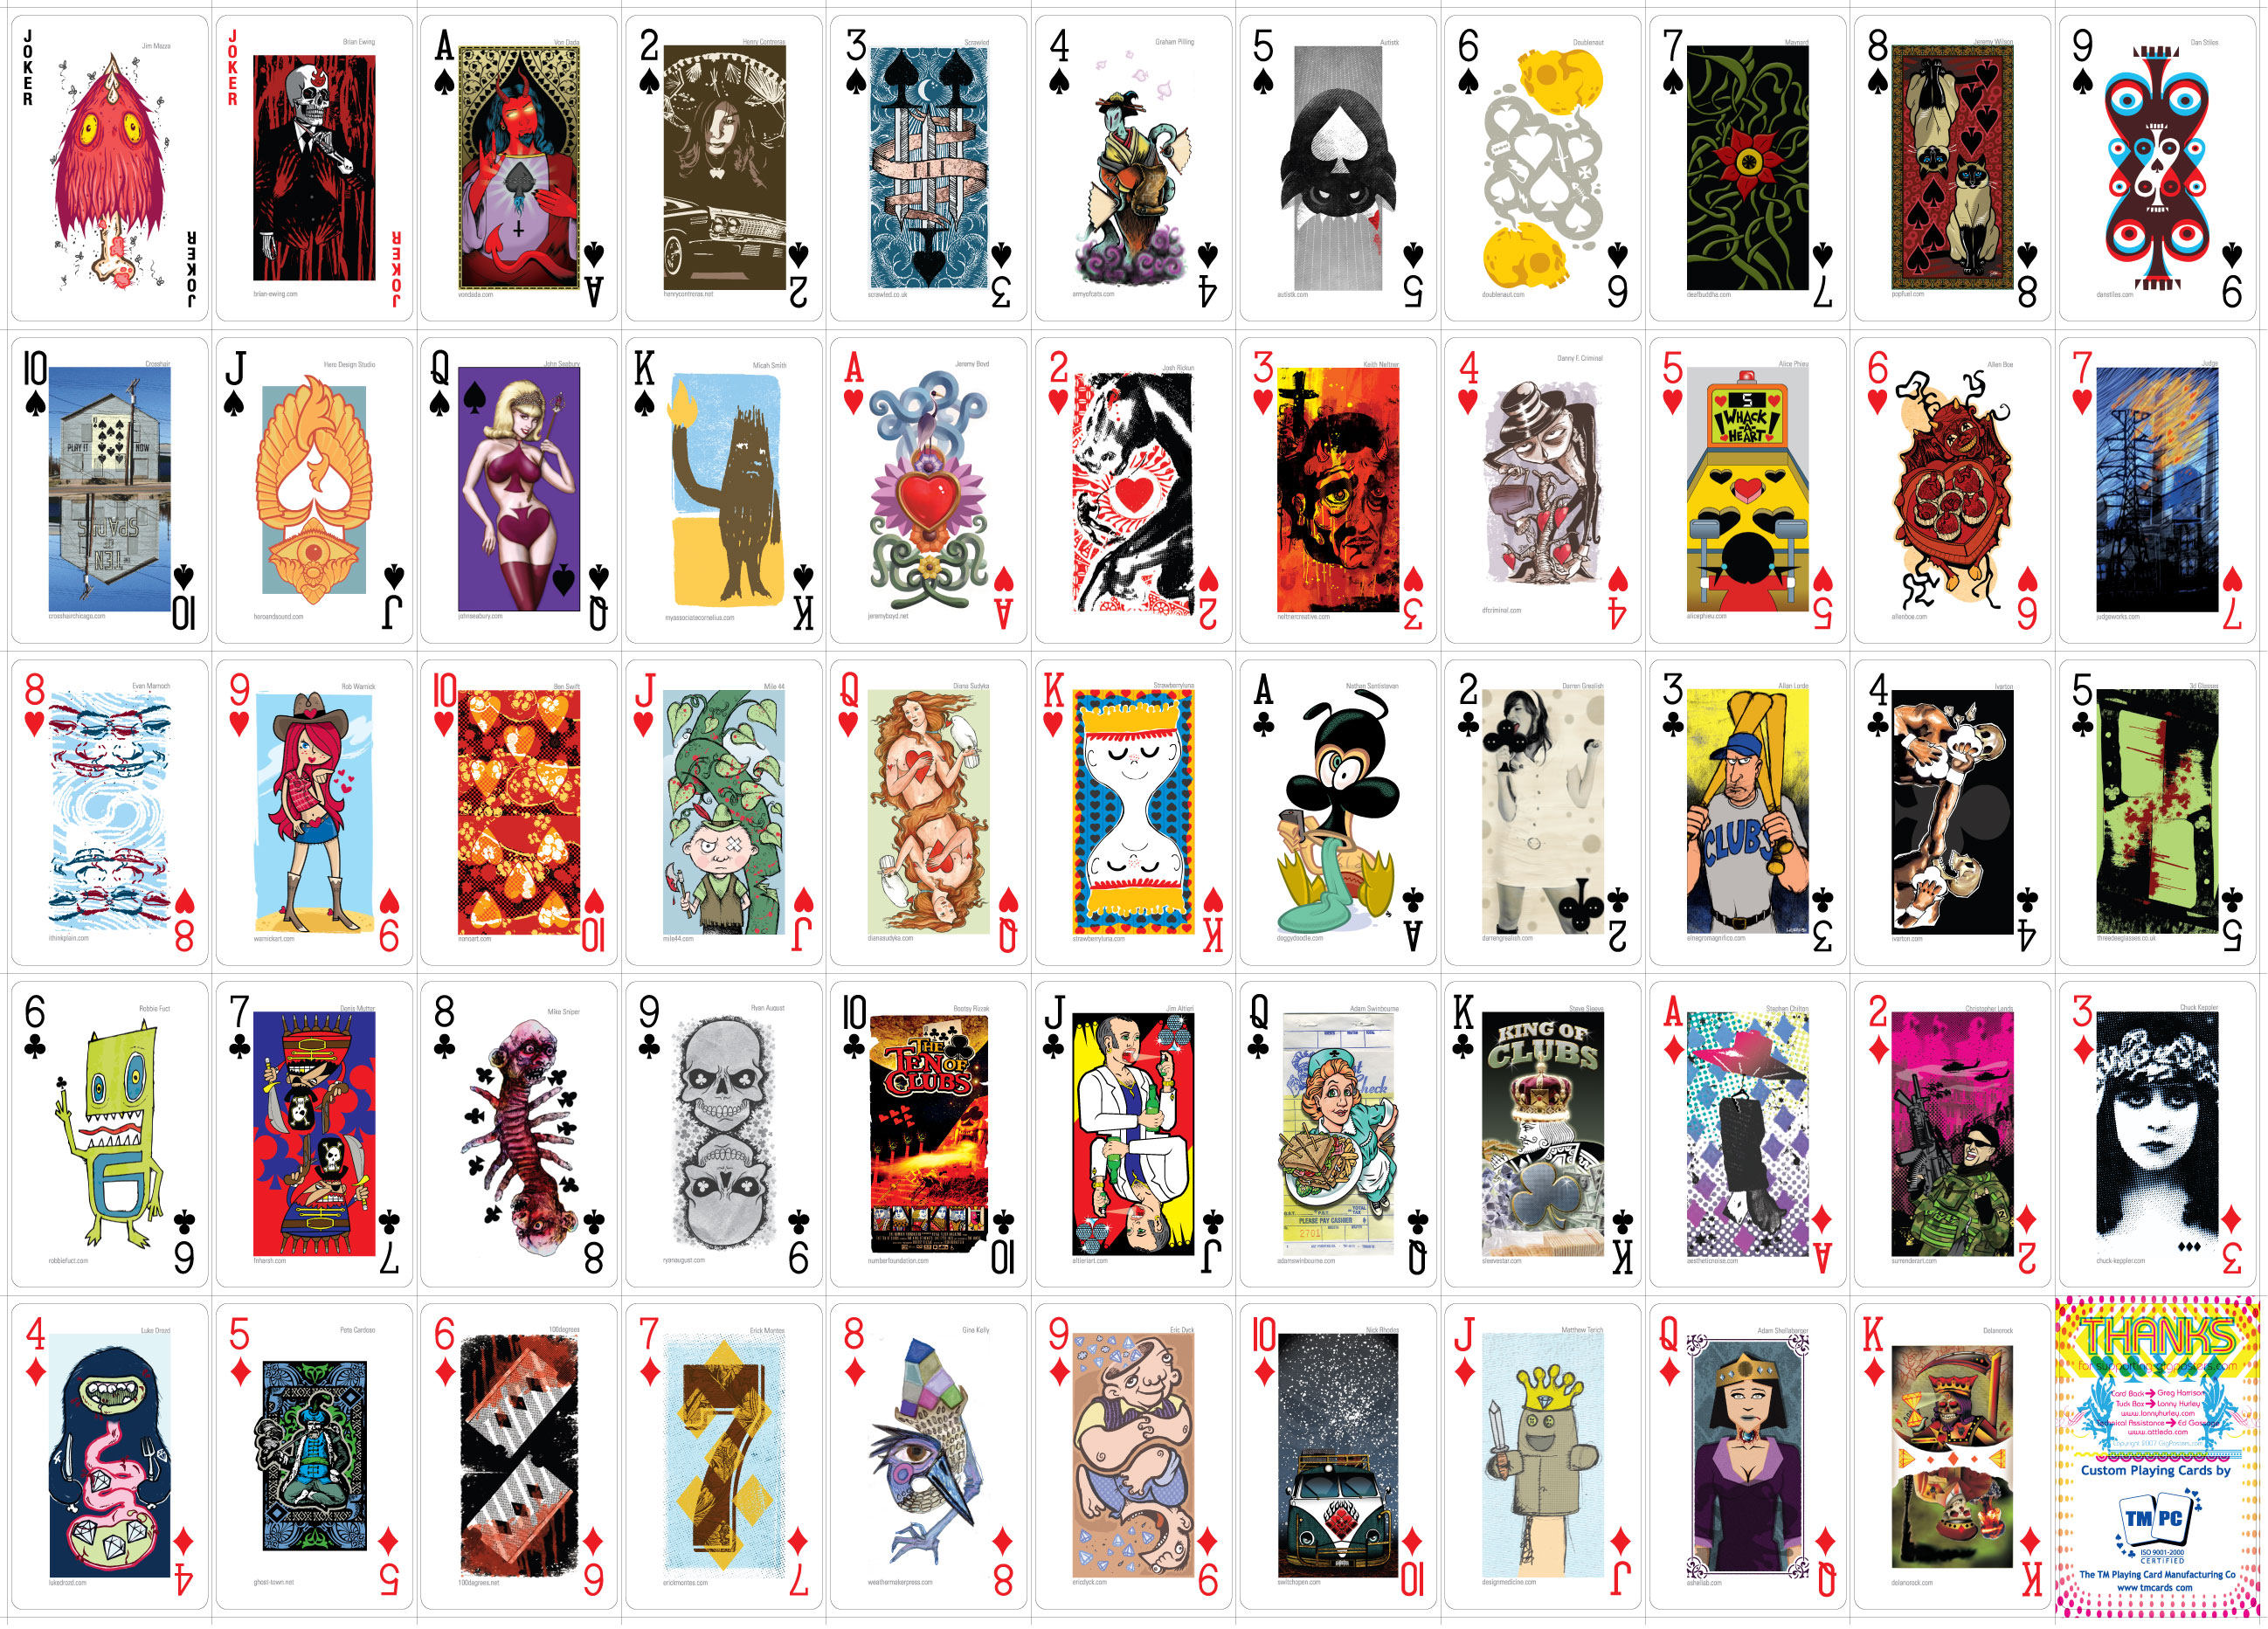 Playing Cards | Free Images at Clker.com - vector clip art